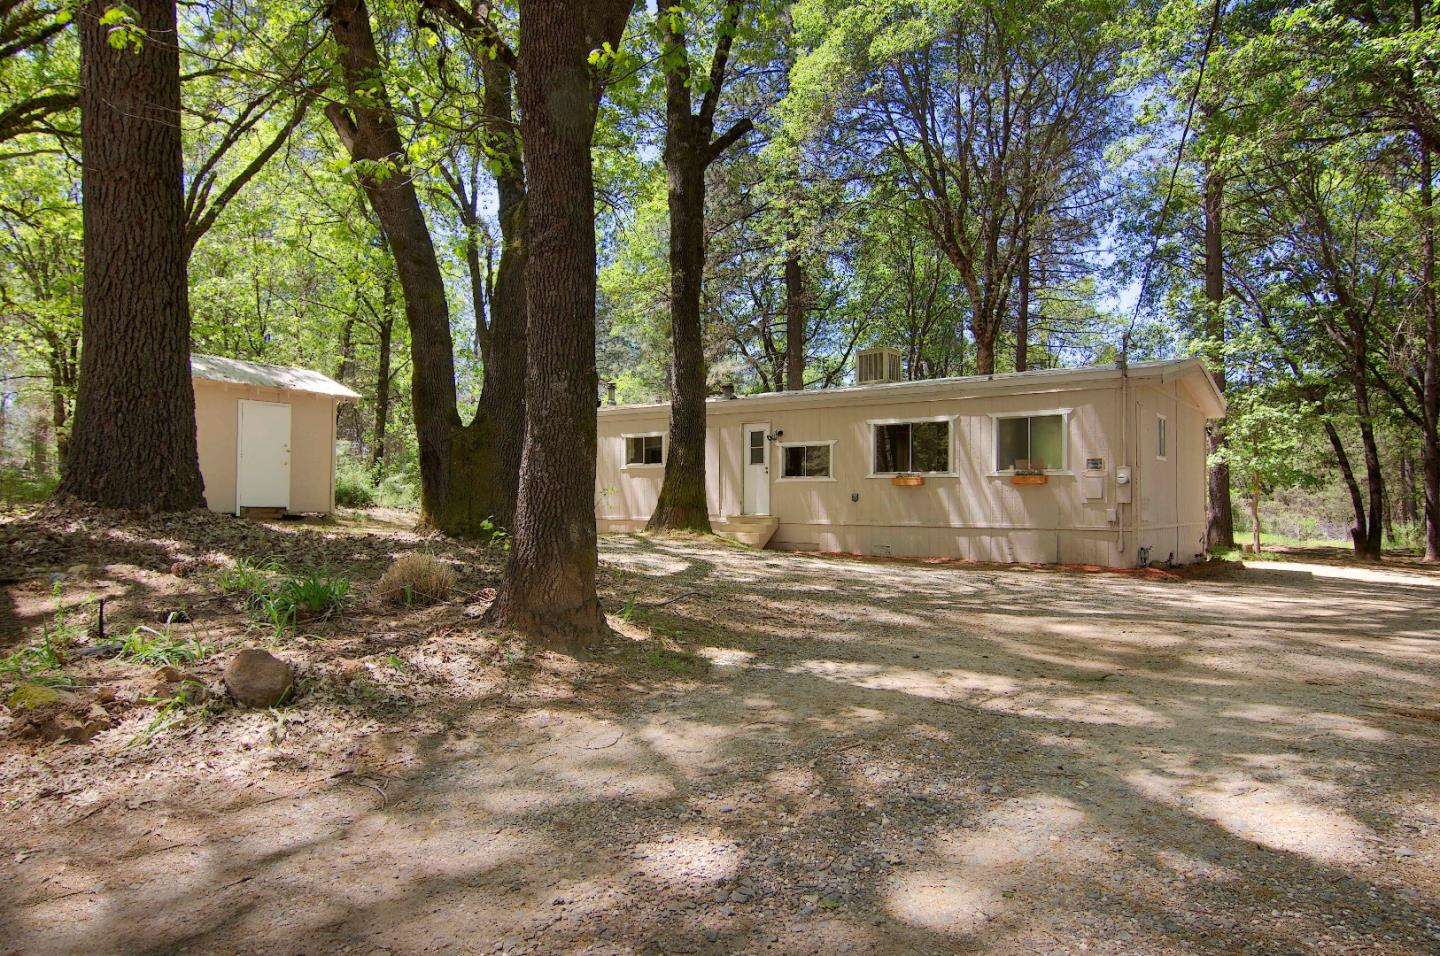 10400 Smith Road, GRASS VALLEY, CA 95949